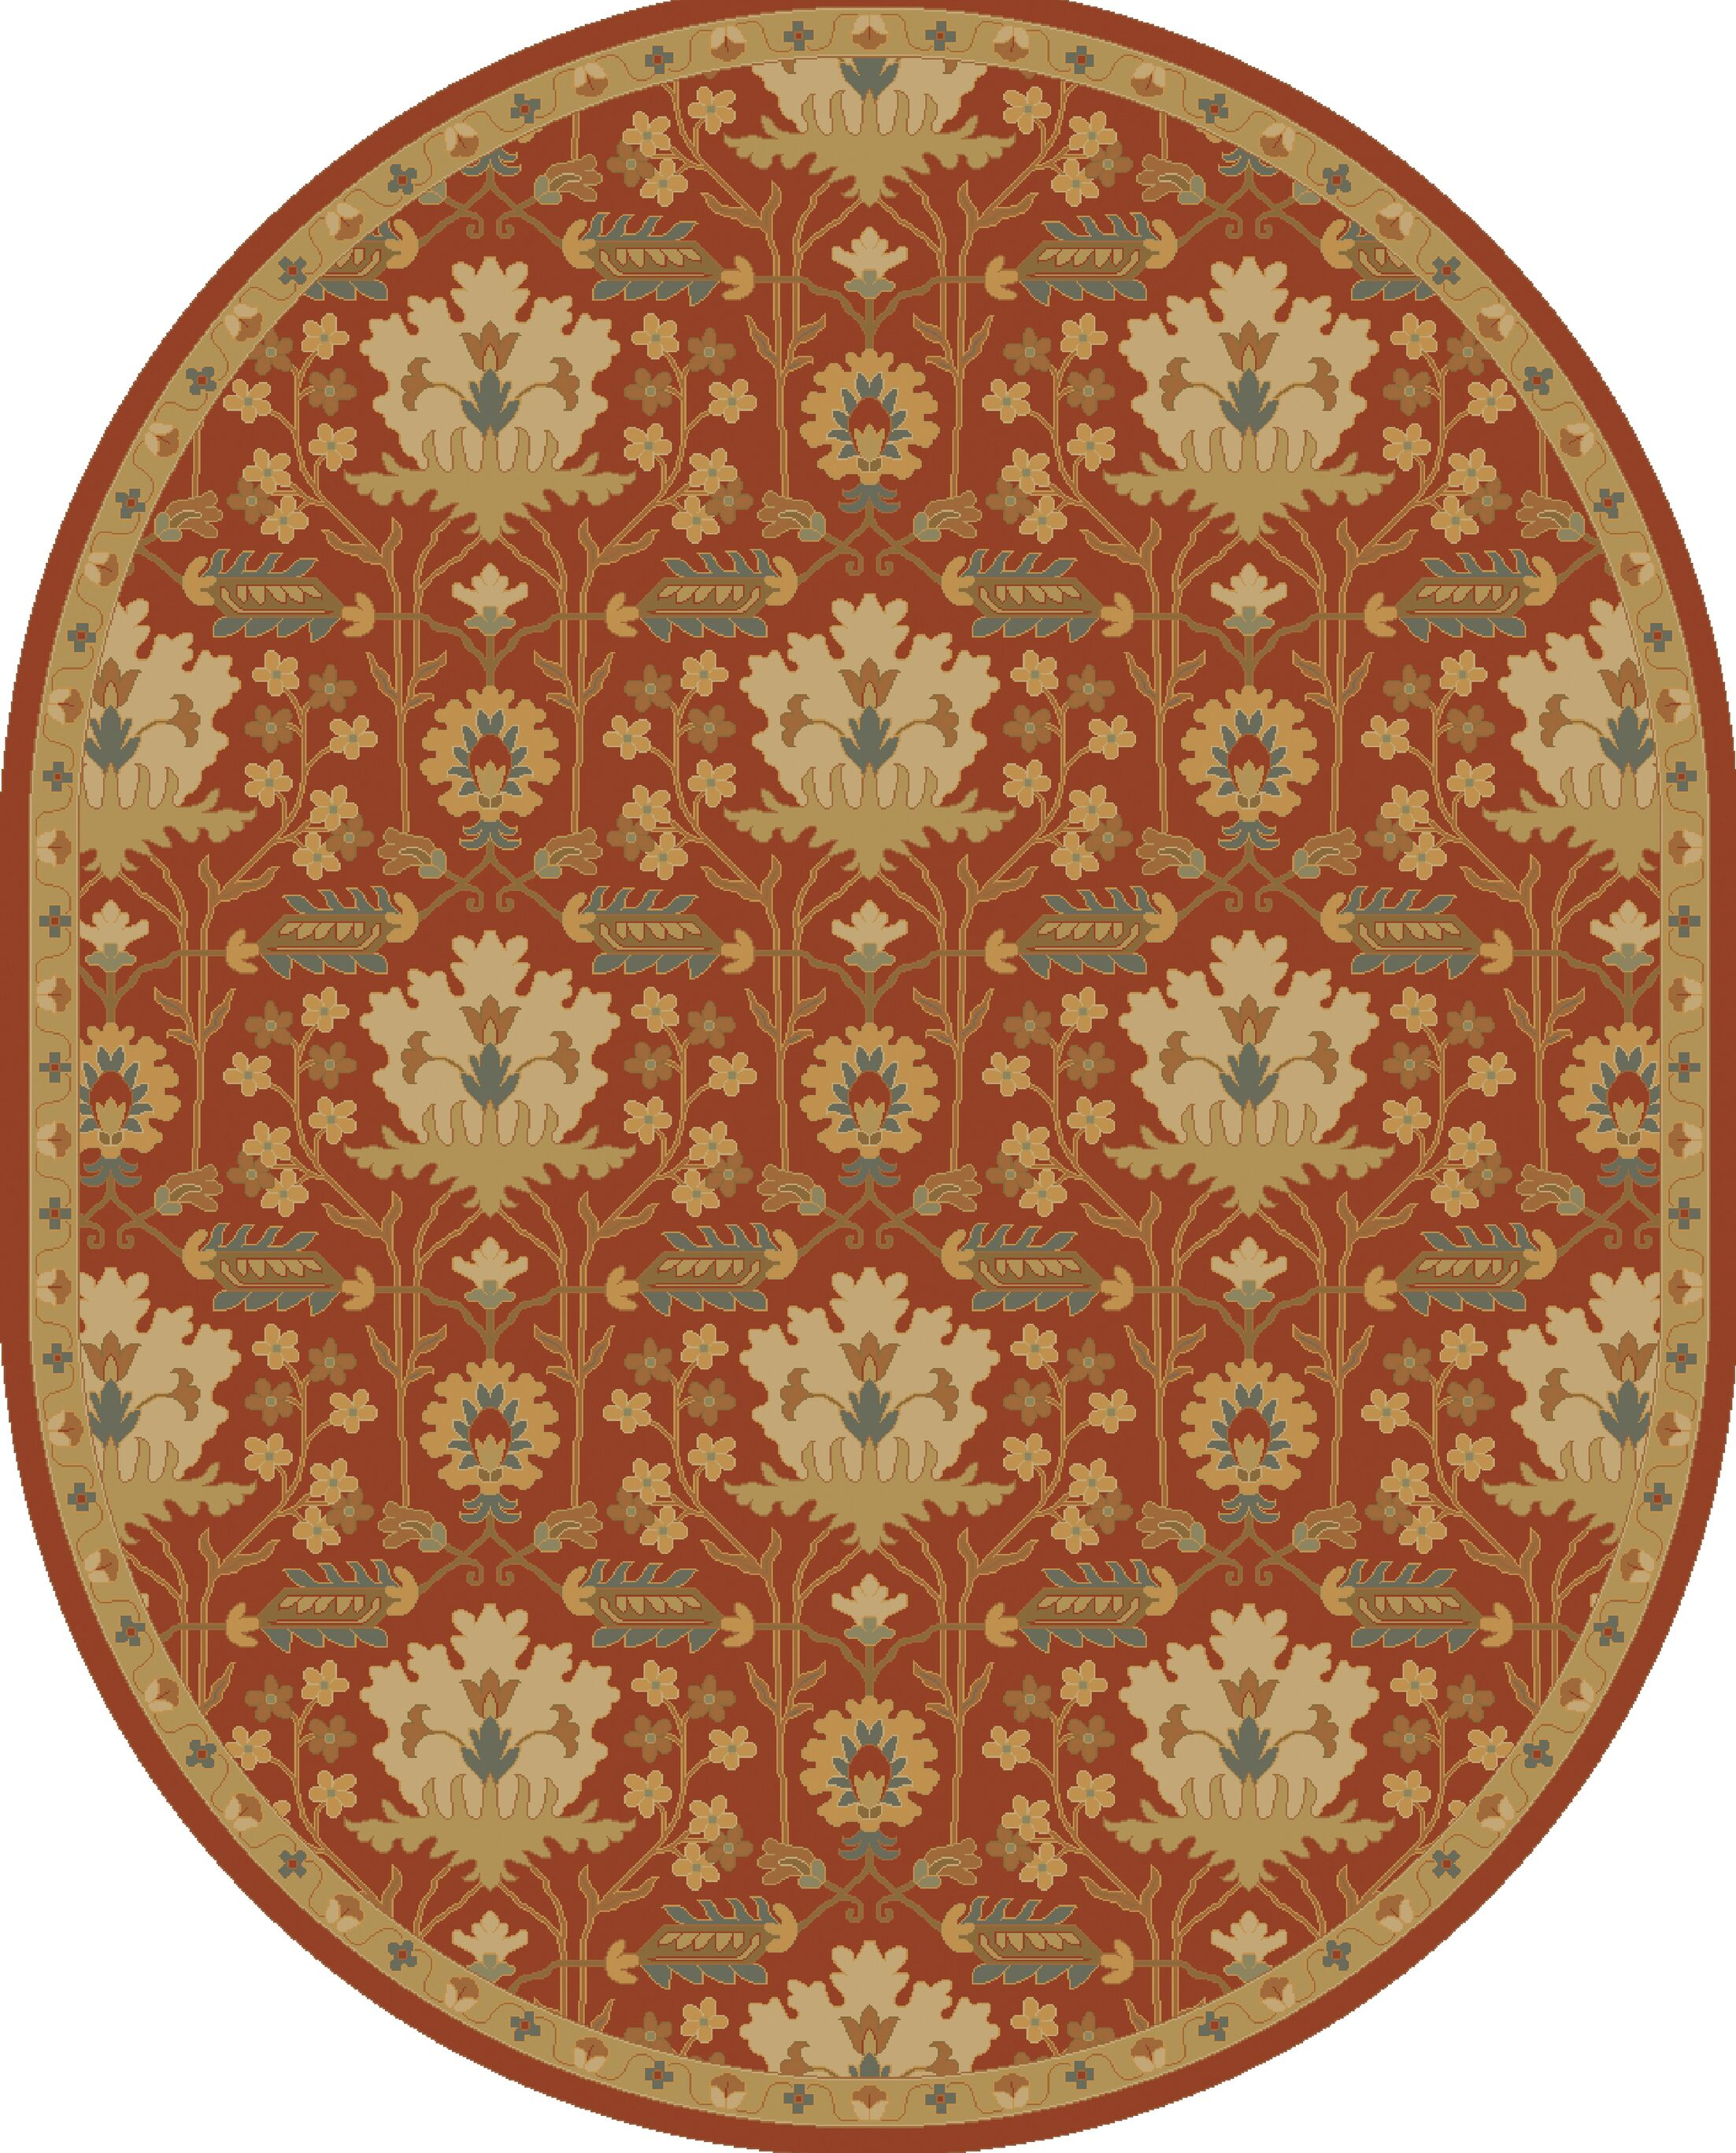 Kempinski Hand-Tufted Red/Beige Area Rug Rug Size: Oval 8' x 10'